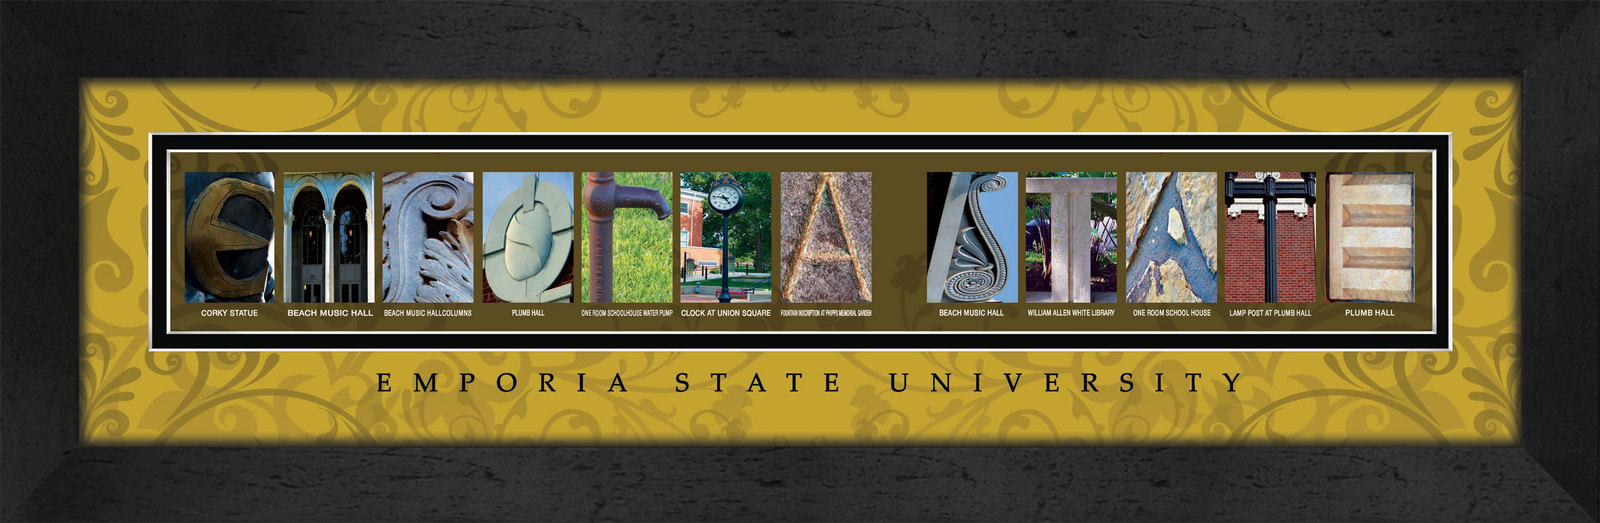 Primary image for Emporia State University Officially Licensed Framed Campus Letter Art